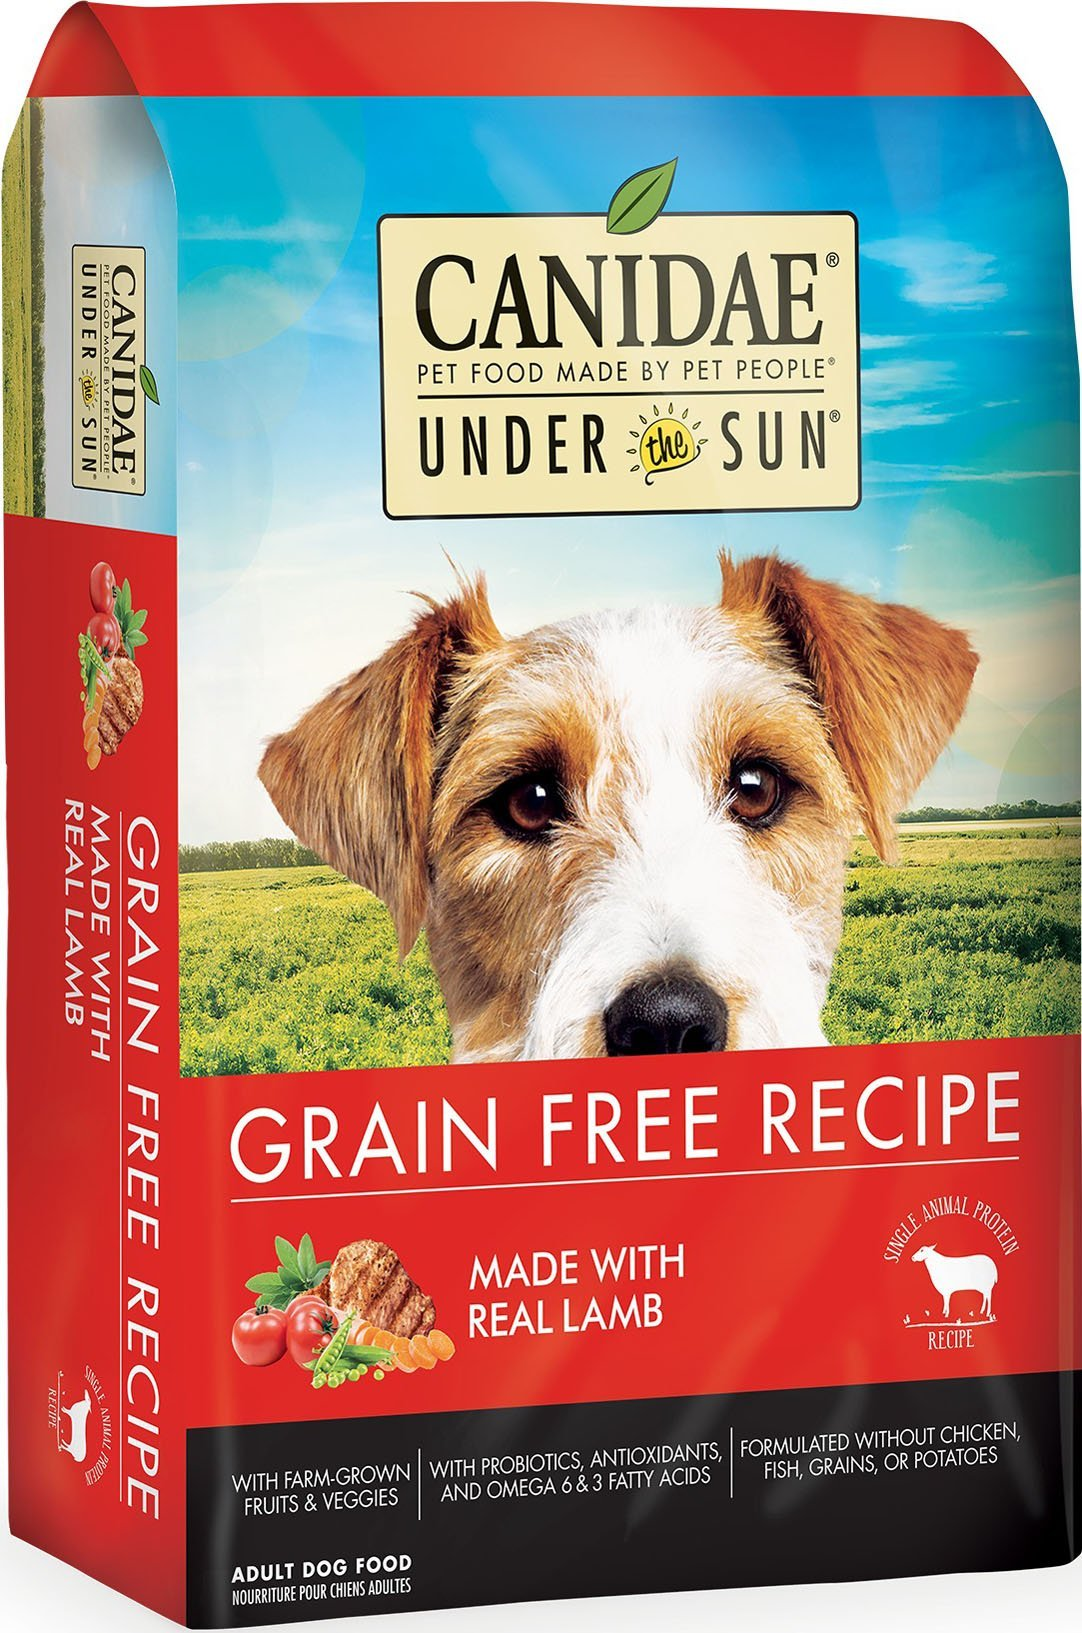 Dog Food Under The Sun Grain Free Dry Dog Food 640461821945 TP012009